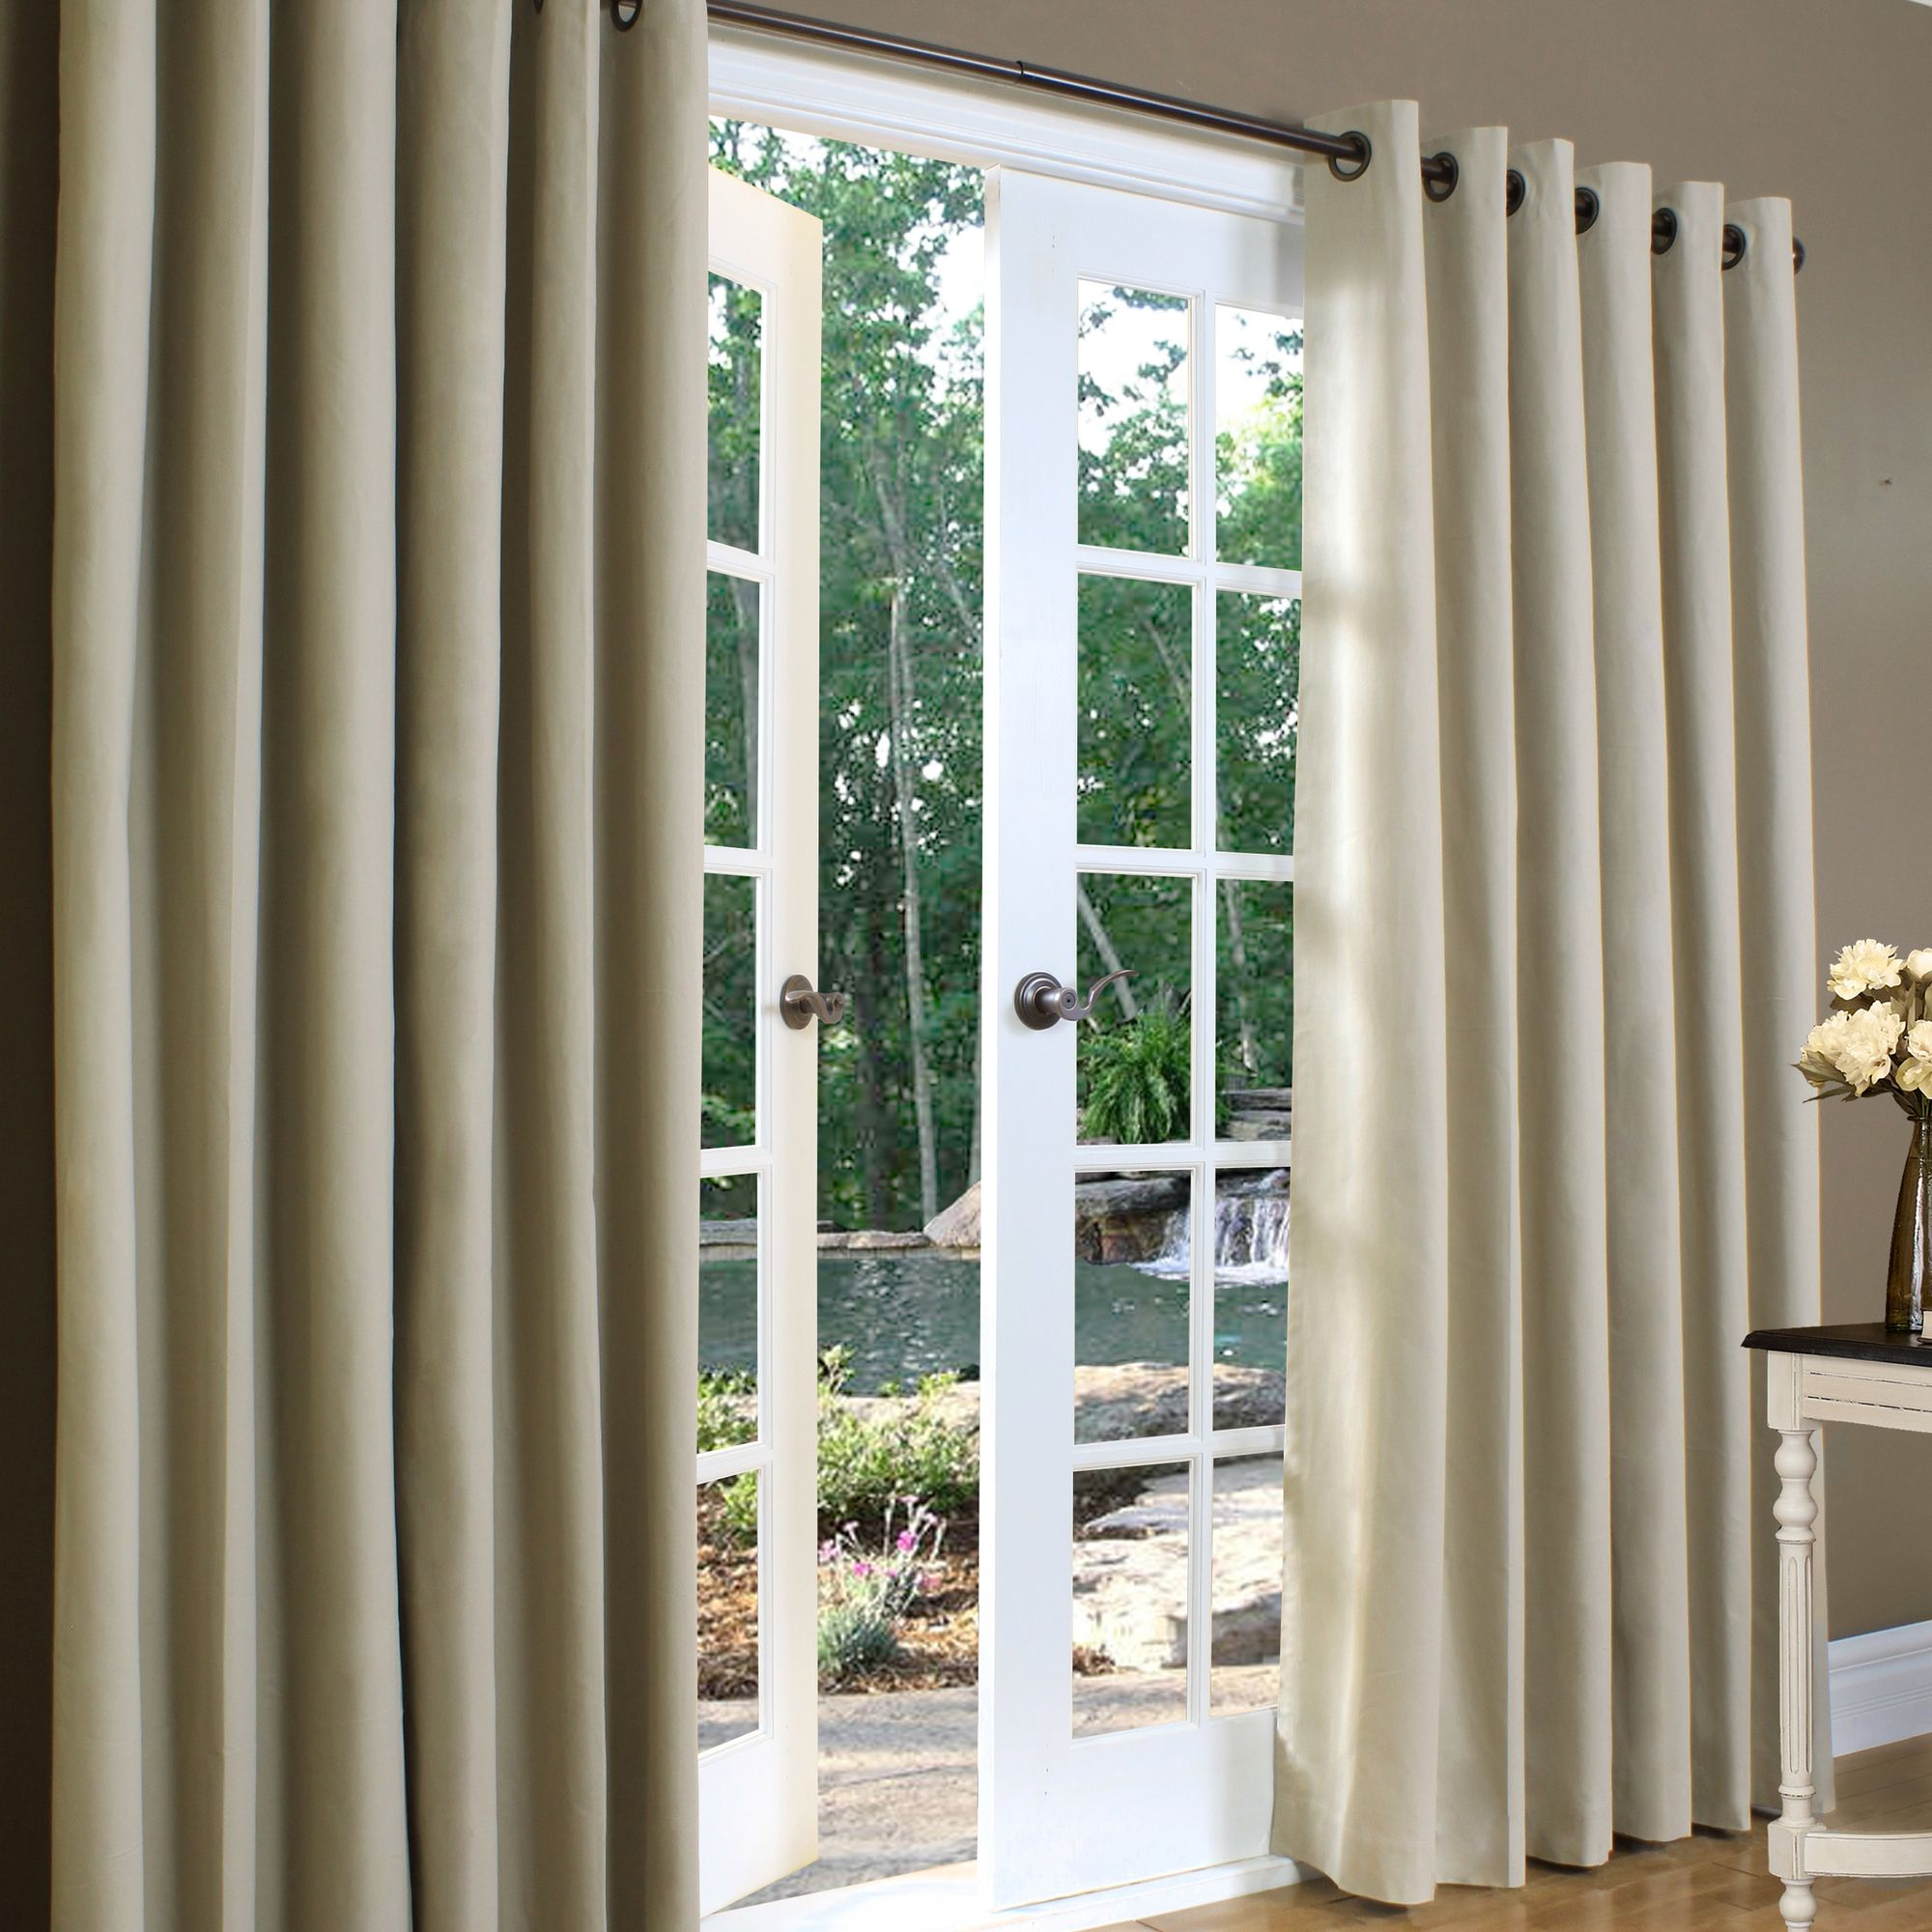 Blinds Shades Wayfair Insulated Curtains Grommet Top Curtains Sliding Glass Door Curtains